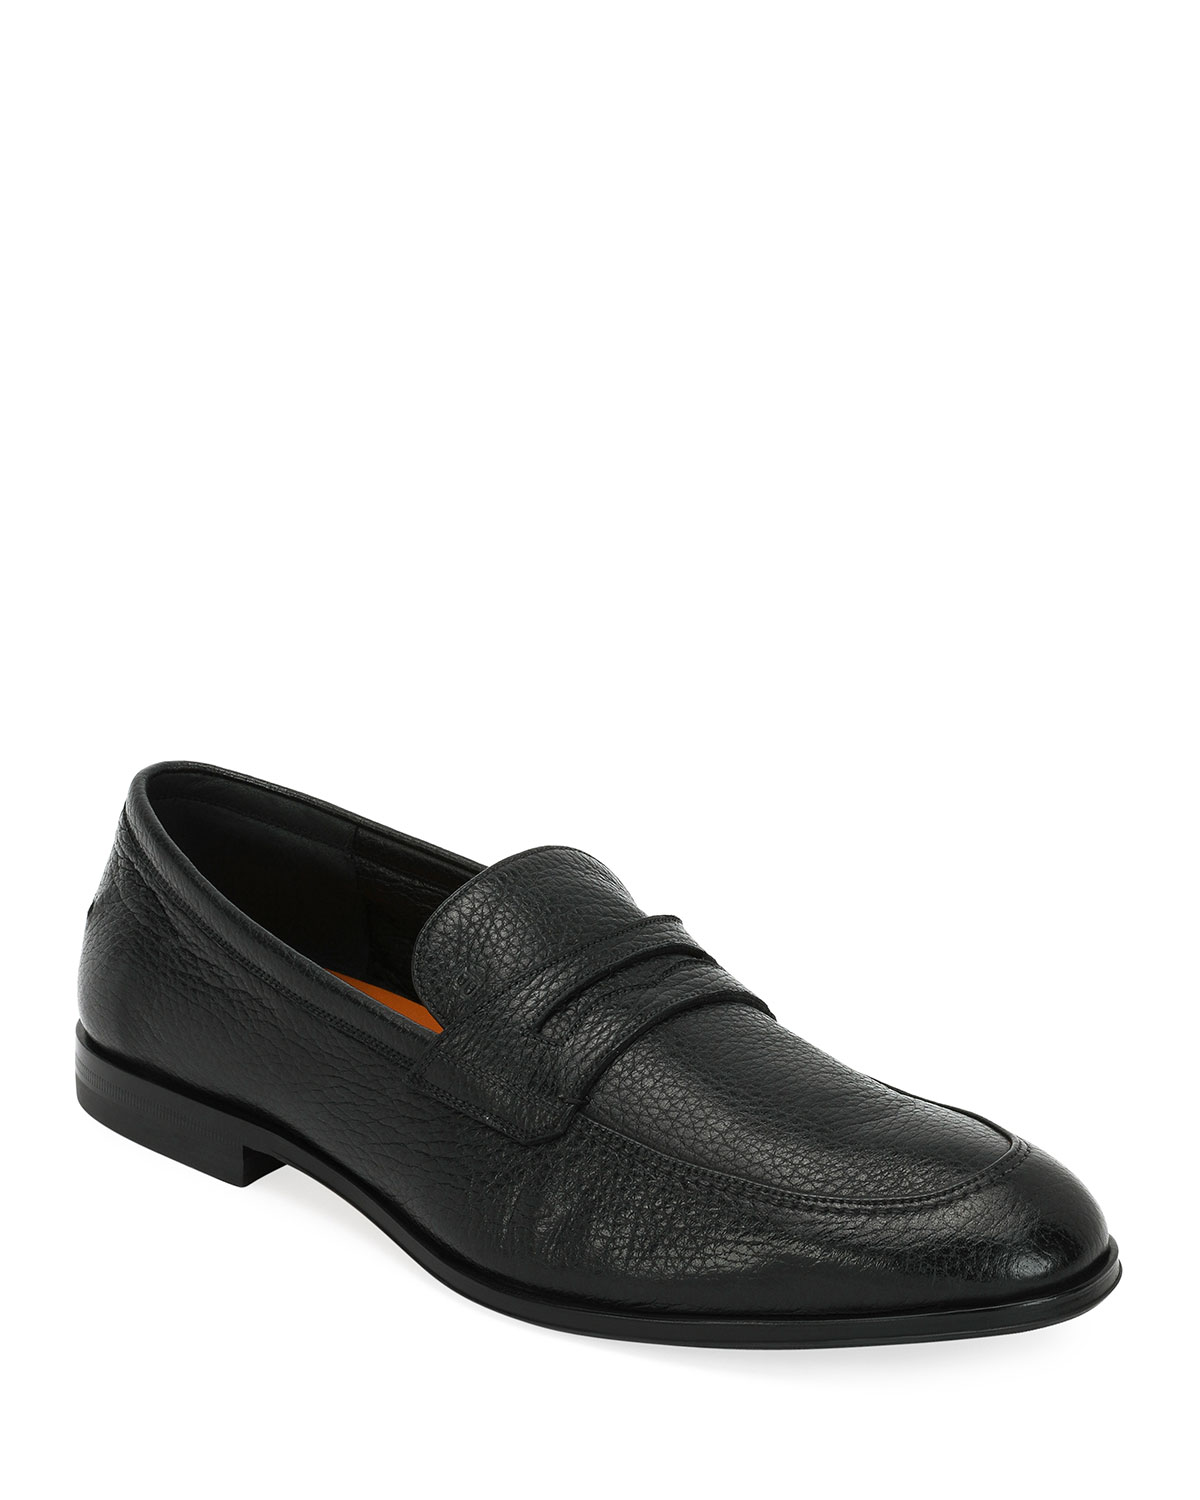 13d310d044c Bally Webb Leather Penny Loafer